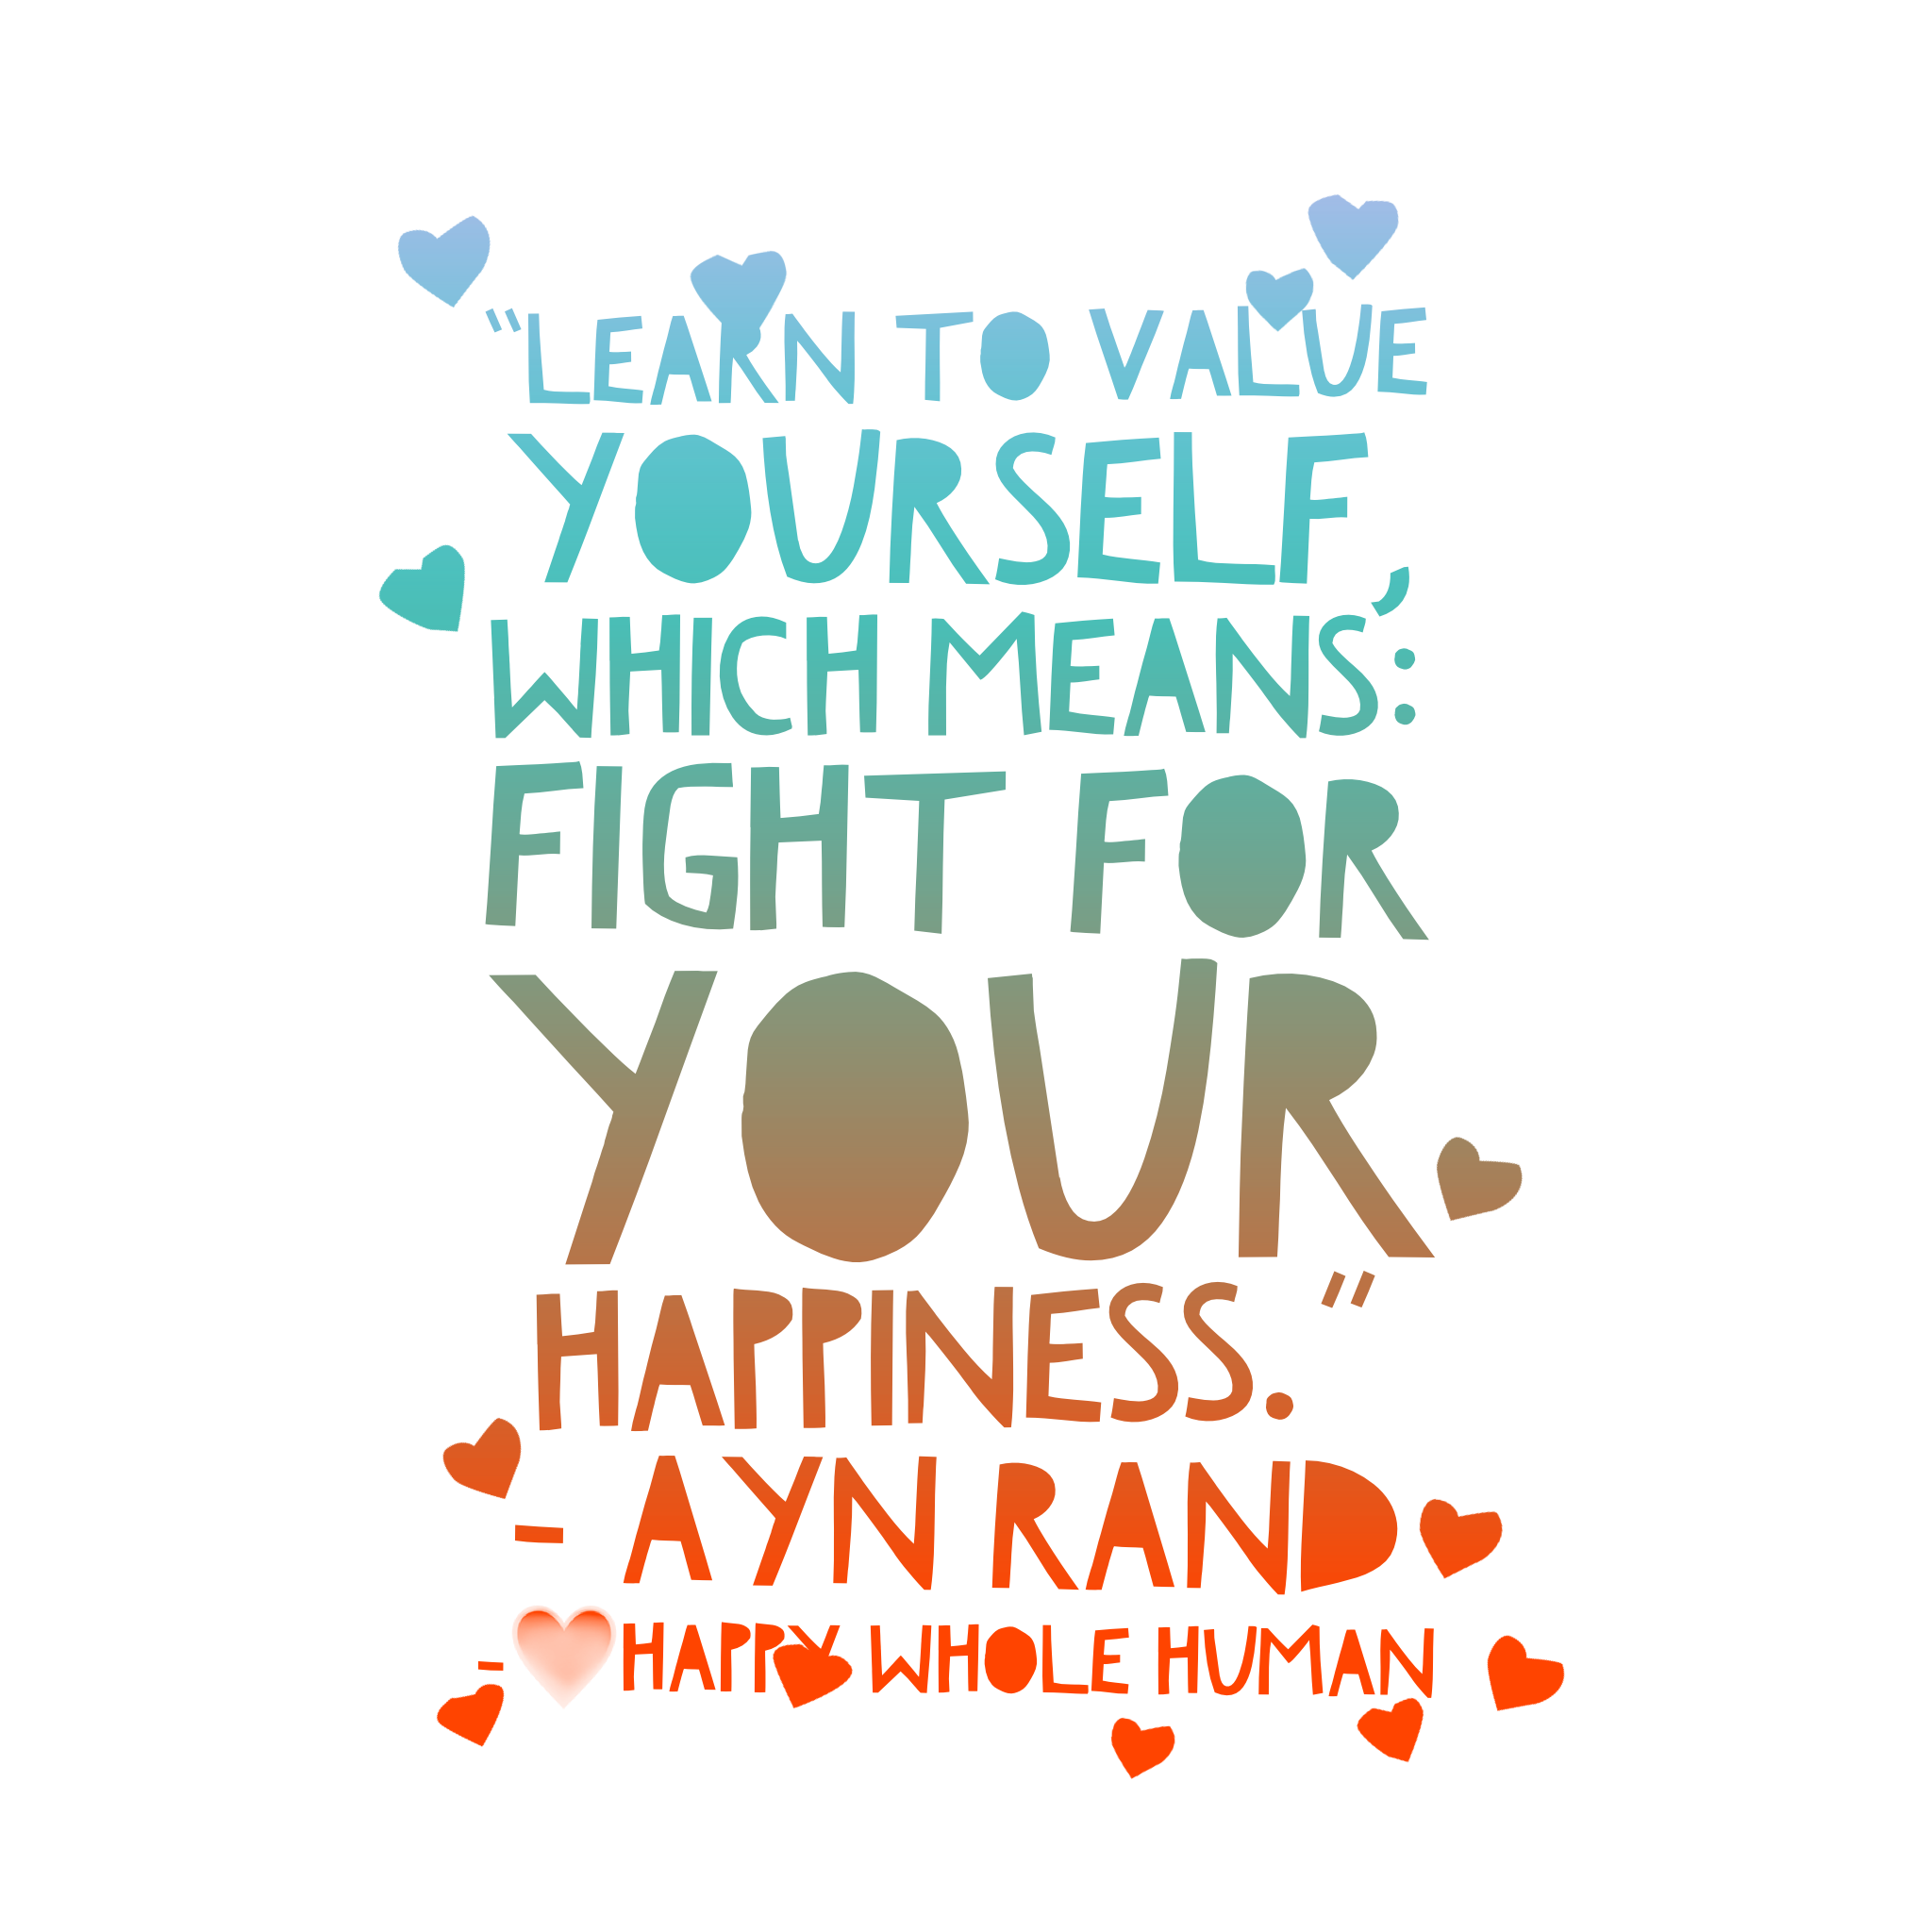 Life Liberty And The Pursuit Of Happiness Quote Learn To Value Yourself Which Means Fight For Your Happiness